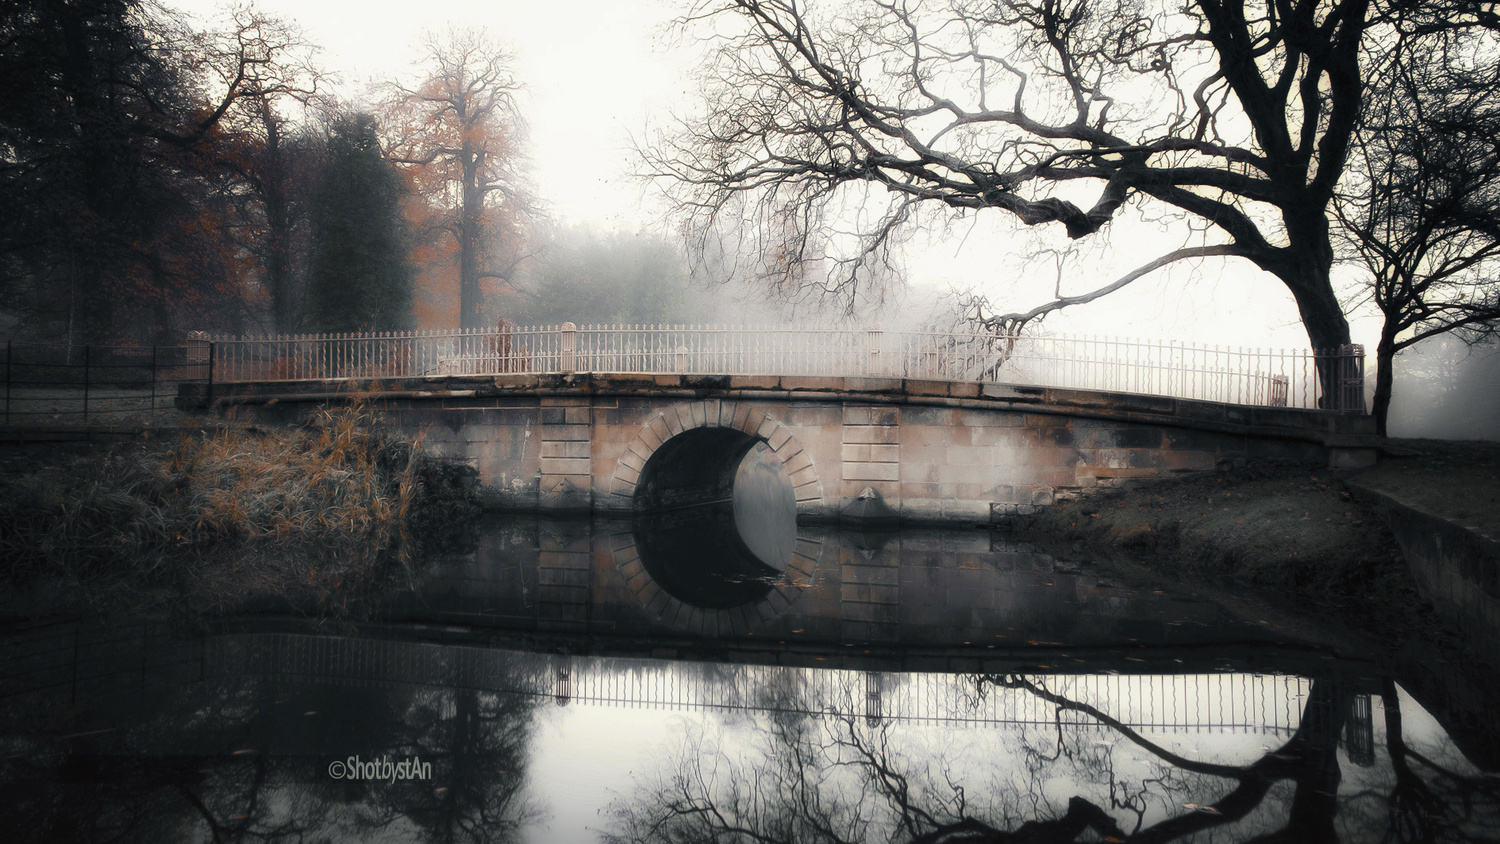 Priory Bridge by Chris 'stAn' Hargrave